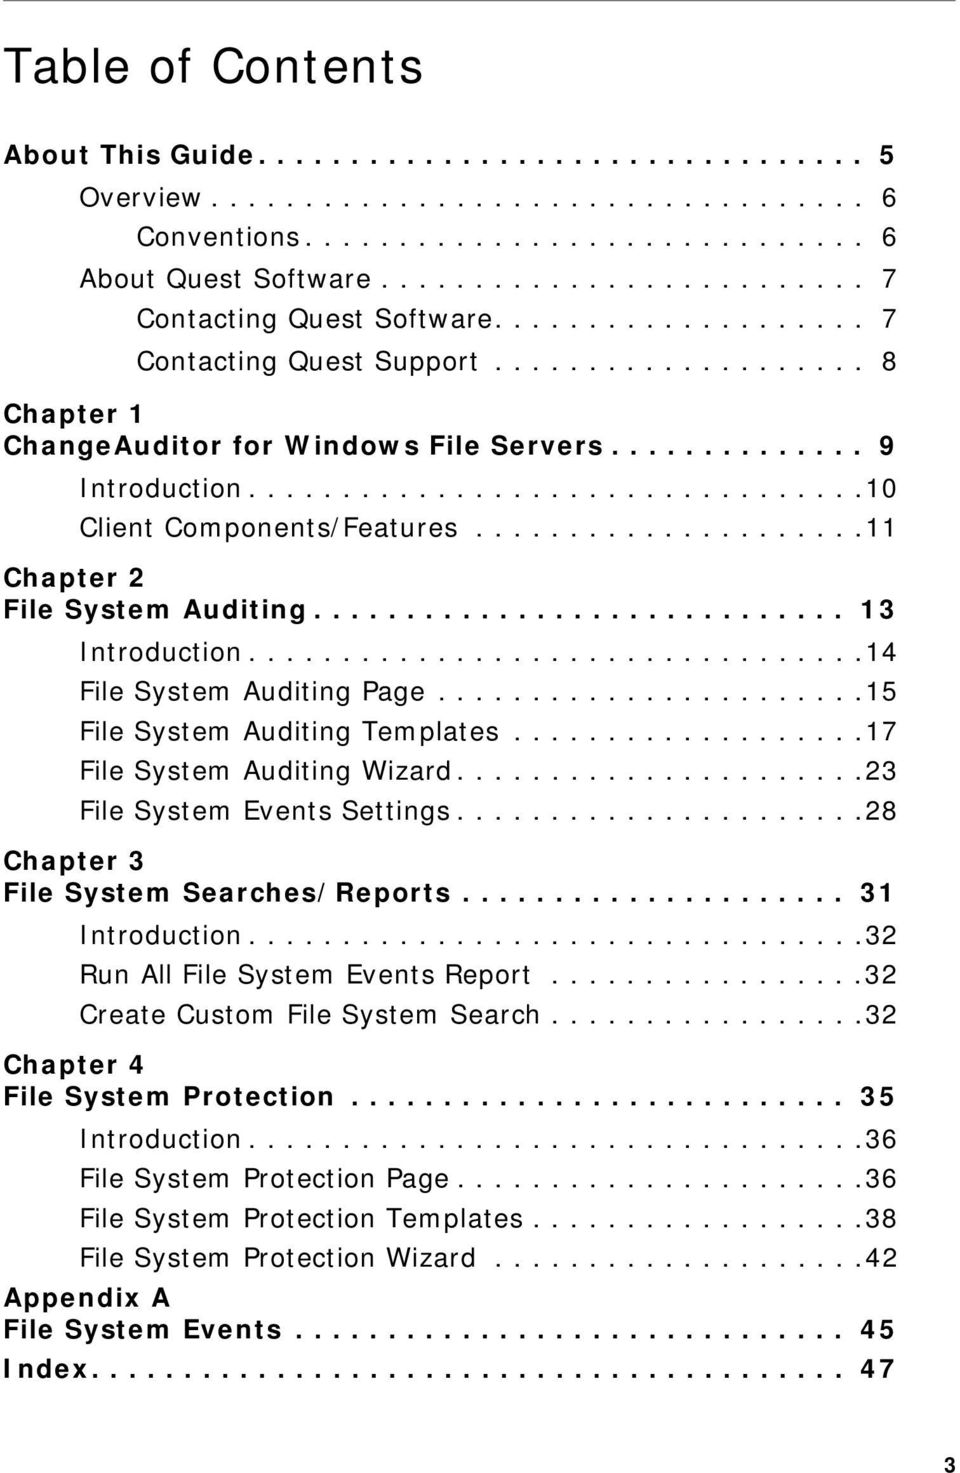 ................................10 Client Components/Features.....................11 Chapter 2 File System Auditing............................. 13 Introduction.................................14 File System Auditing Page.